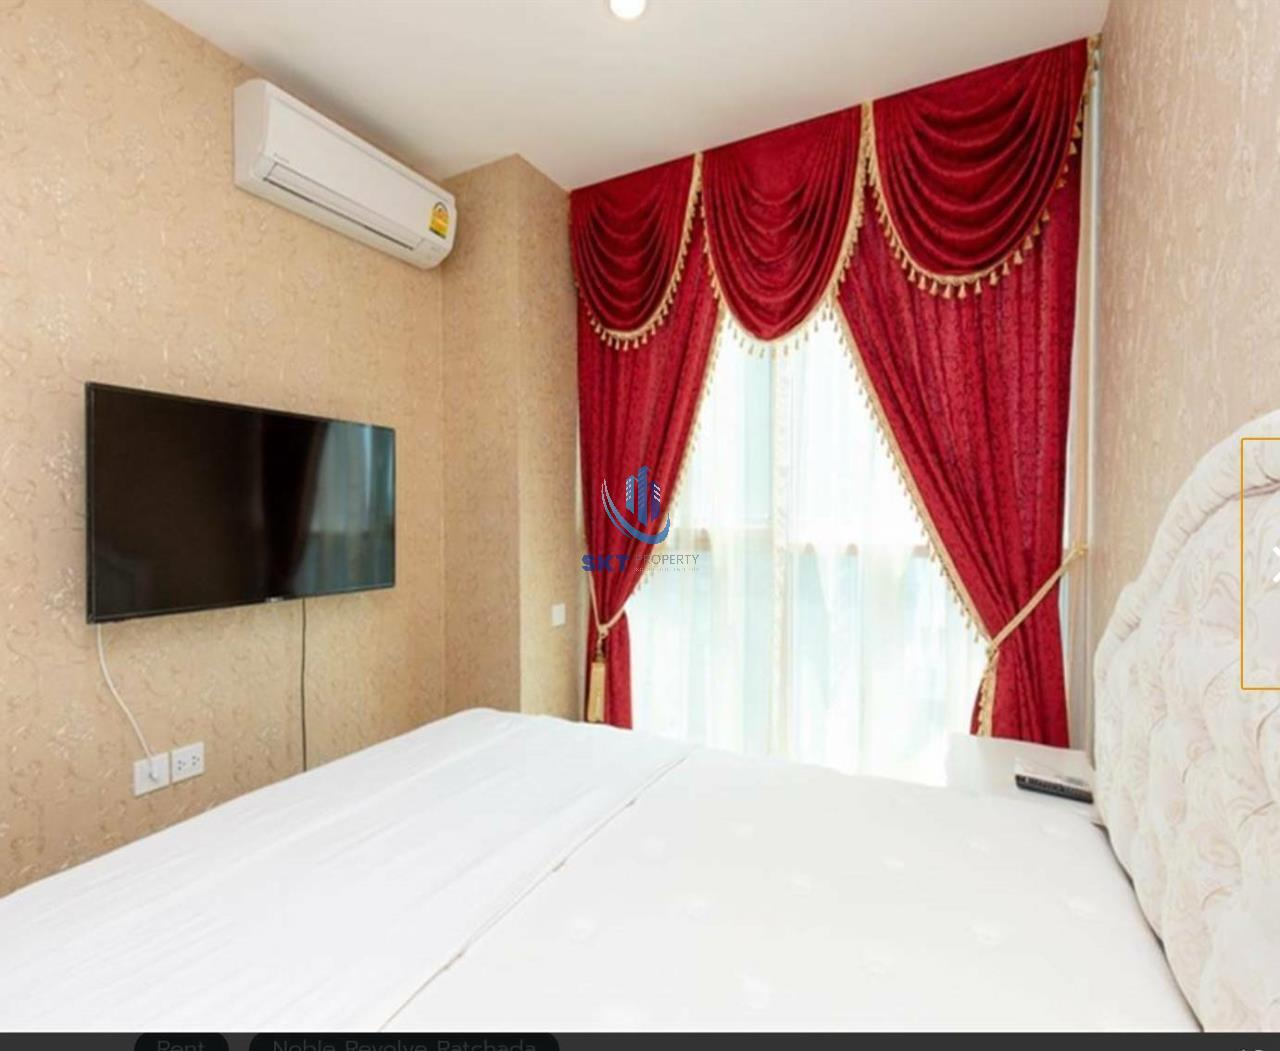 Sukritta Property Agency's FOR RENT NOBLE REVOLVE RATCHADA 1 NEAR MRT THAILAND CULTURAL CENTER 1